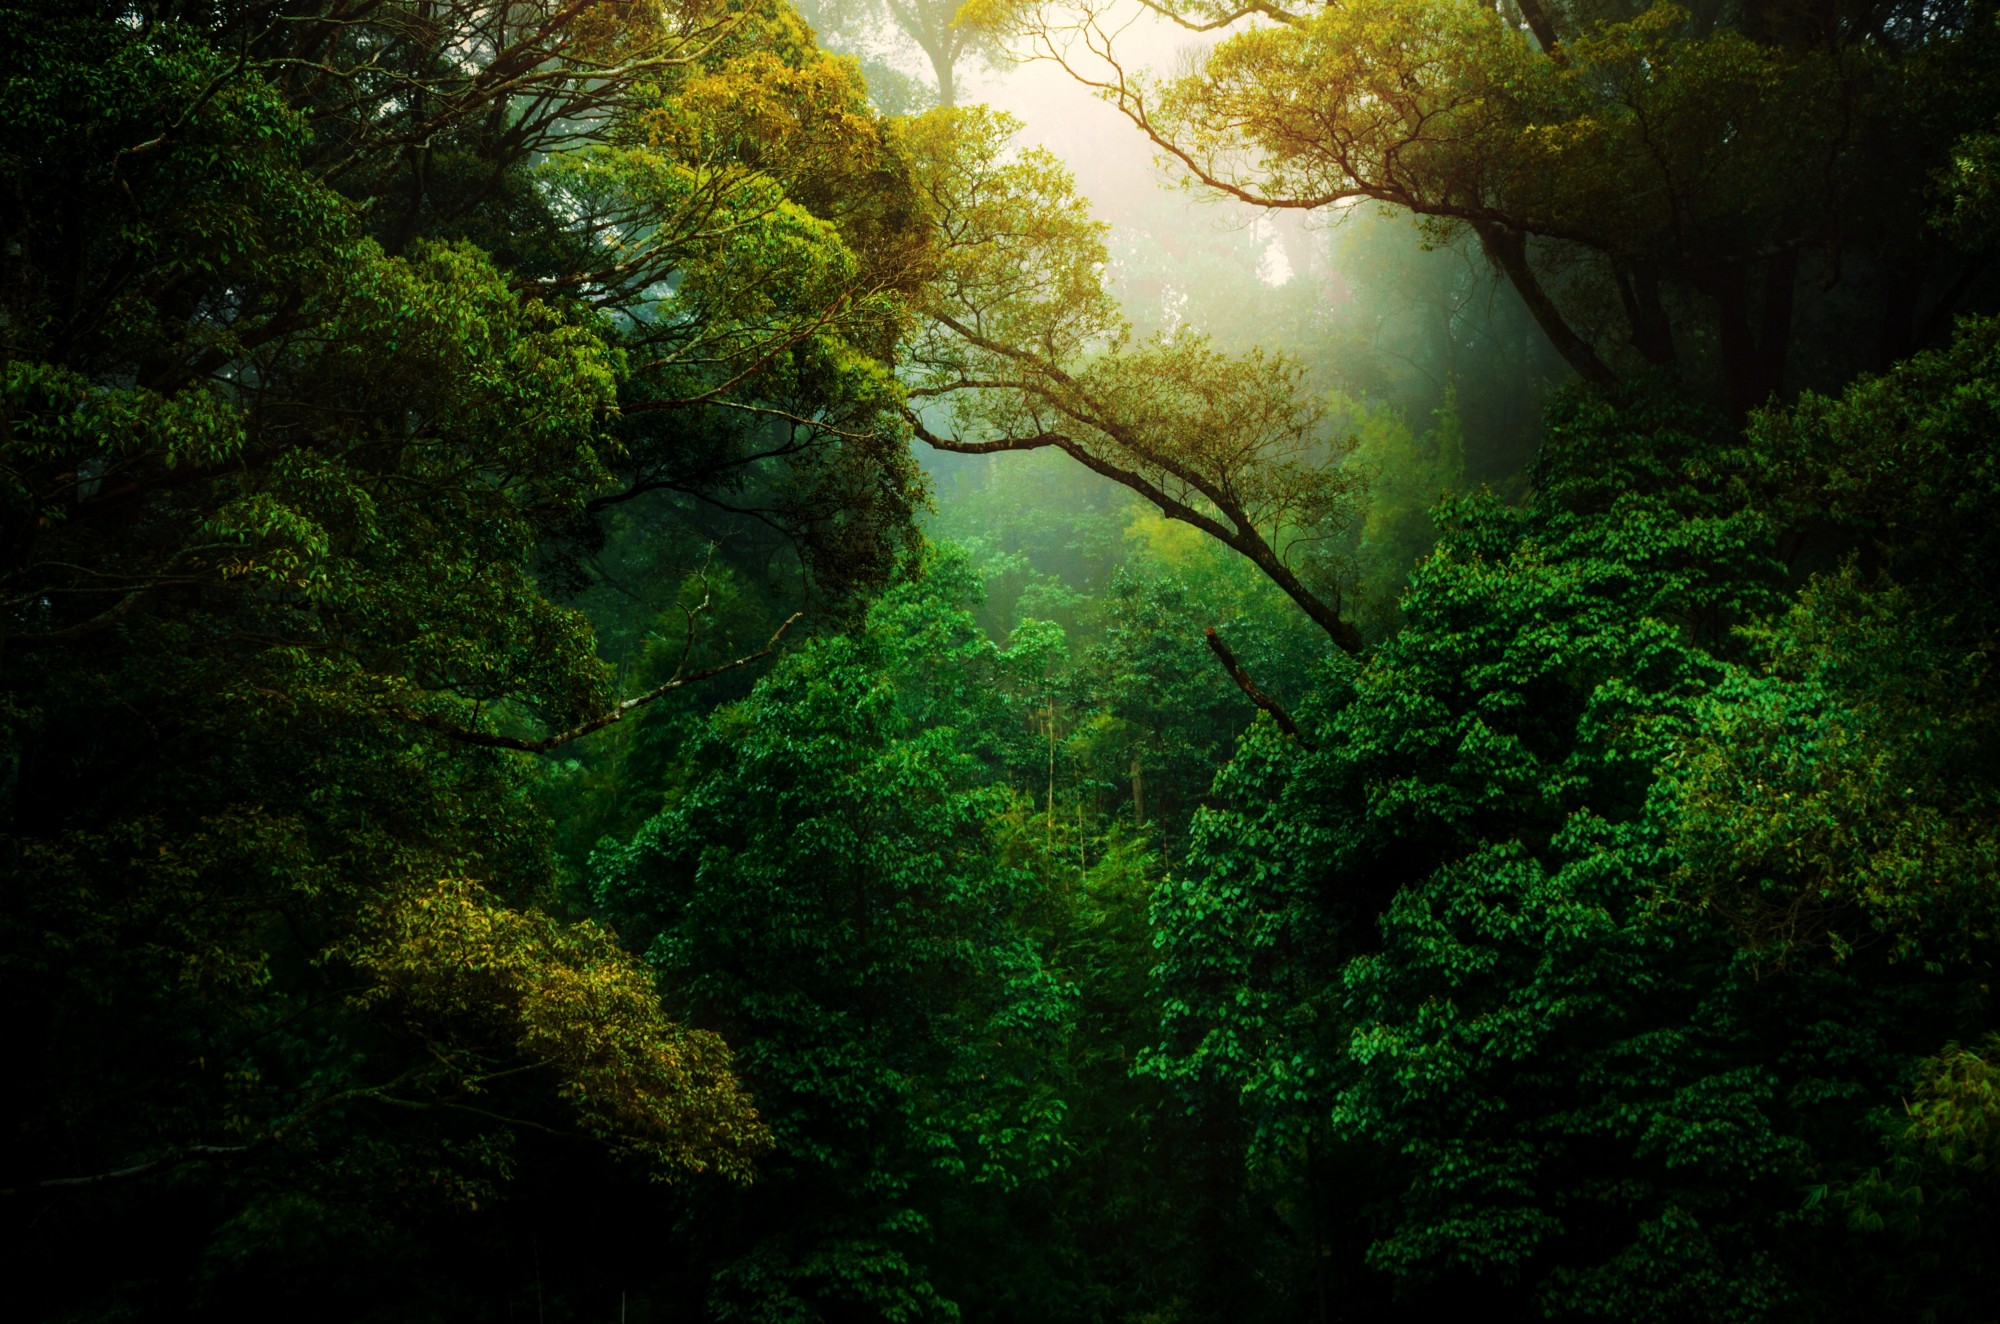 A beautiful picture of sun filtering through dense green forests by Kunal Shinde on Unsplash